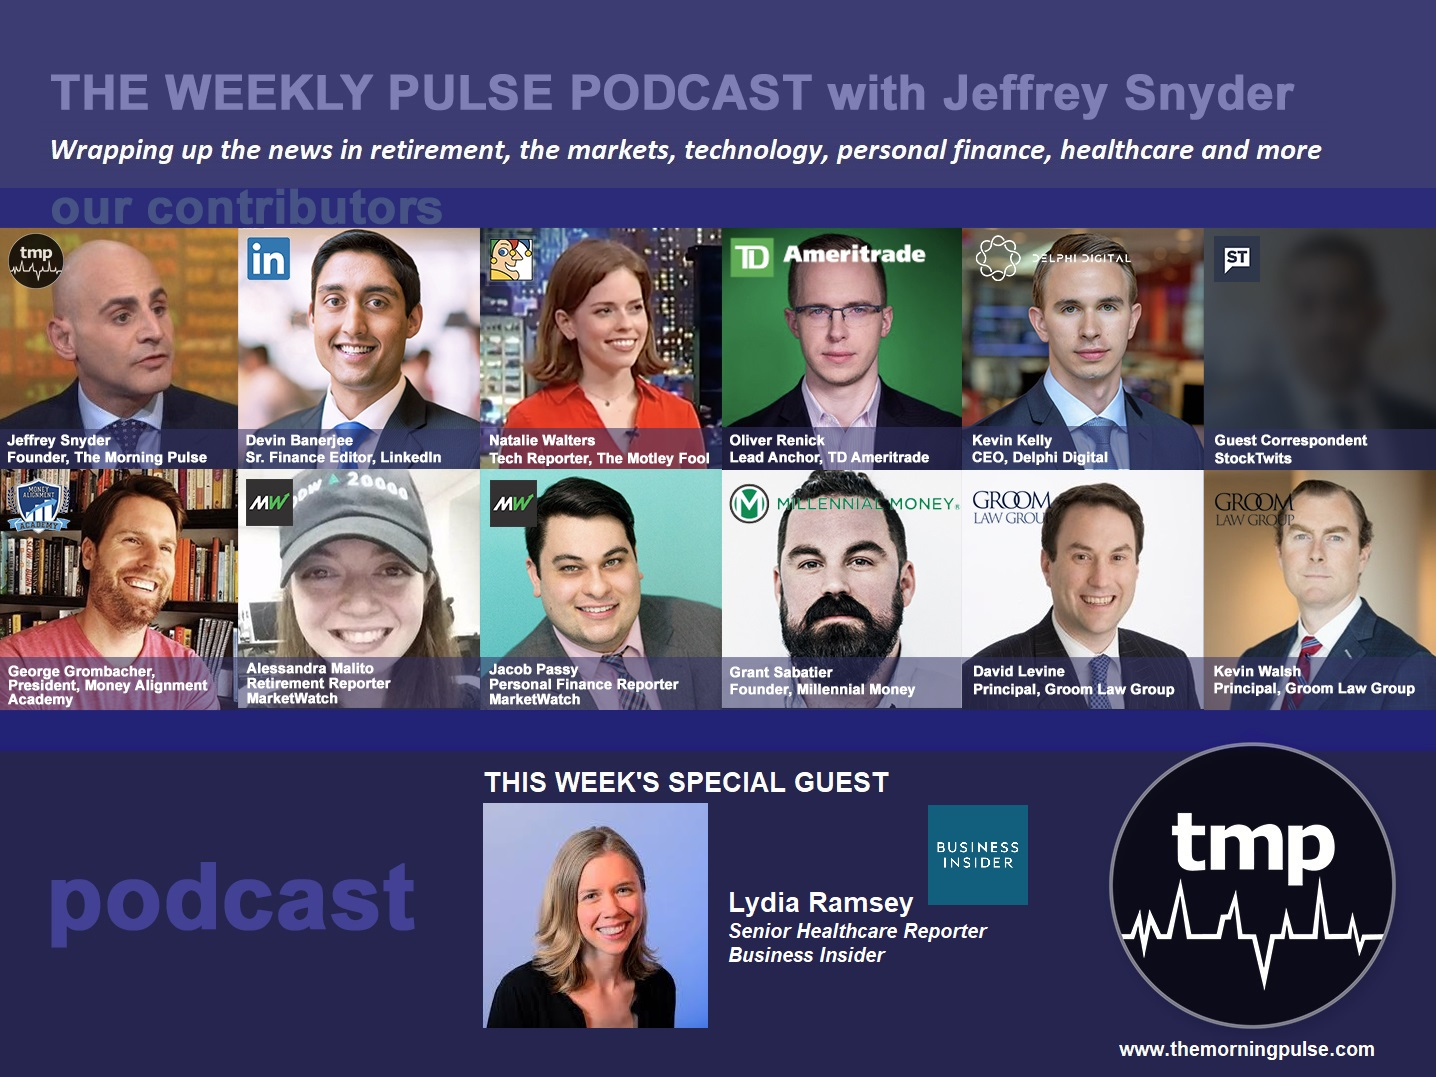 The Weekly Pulse Podcast for Sunday, March 31, 2019